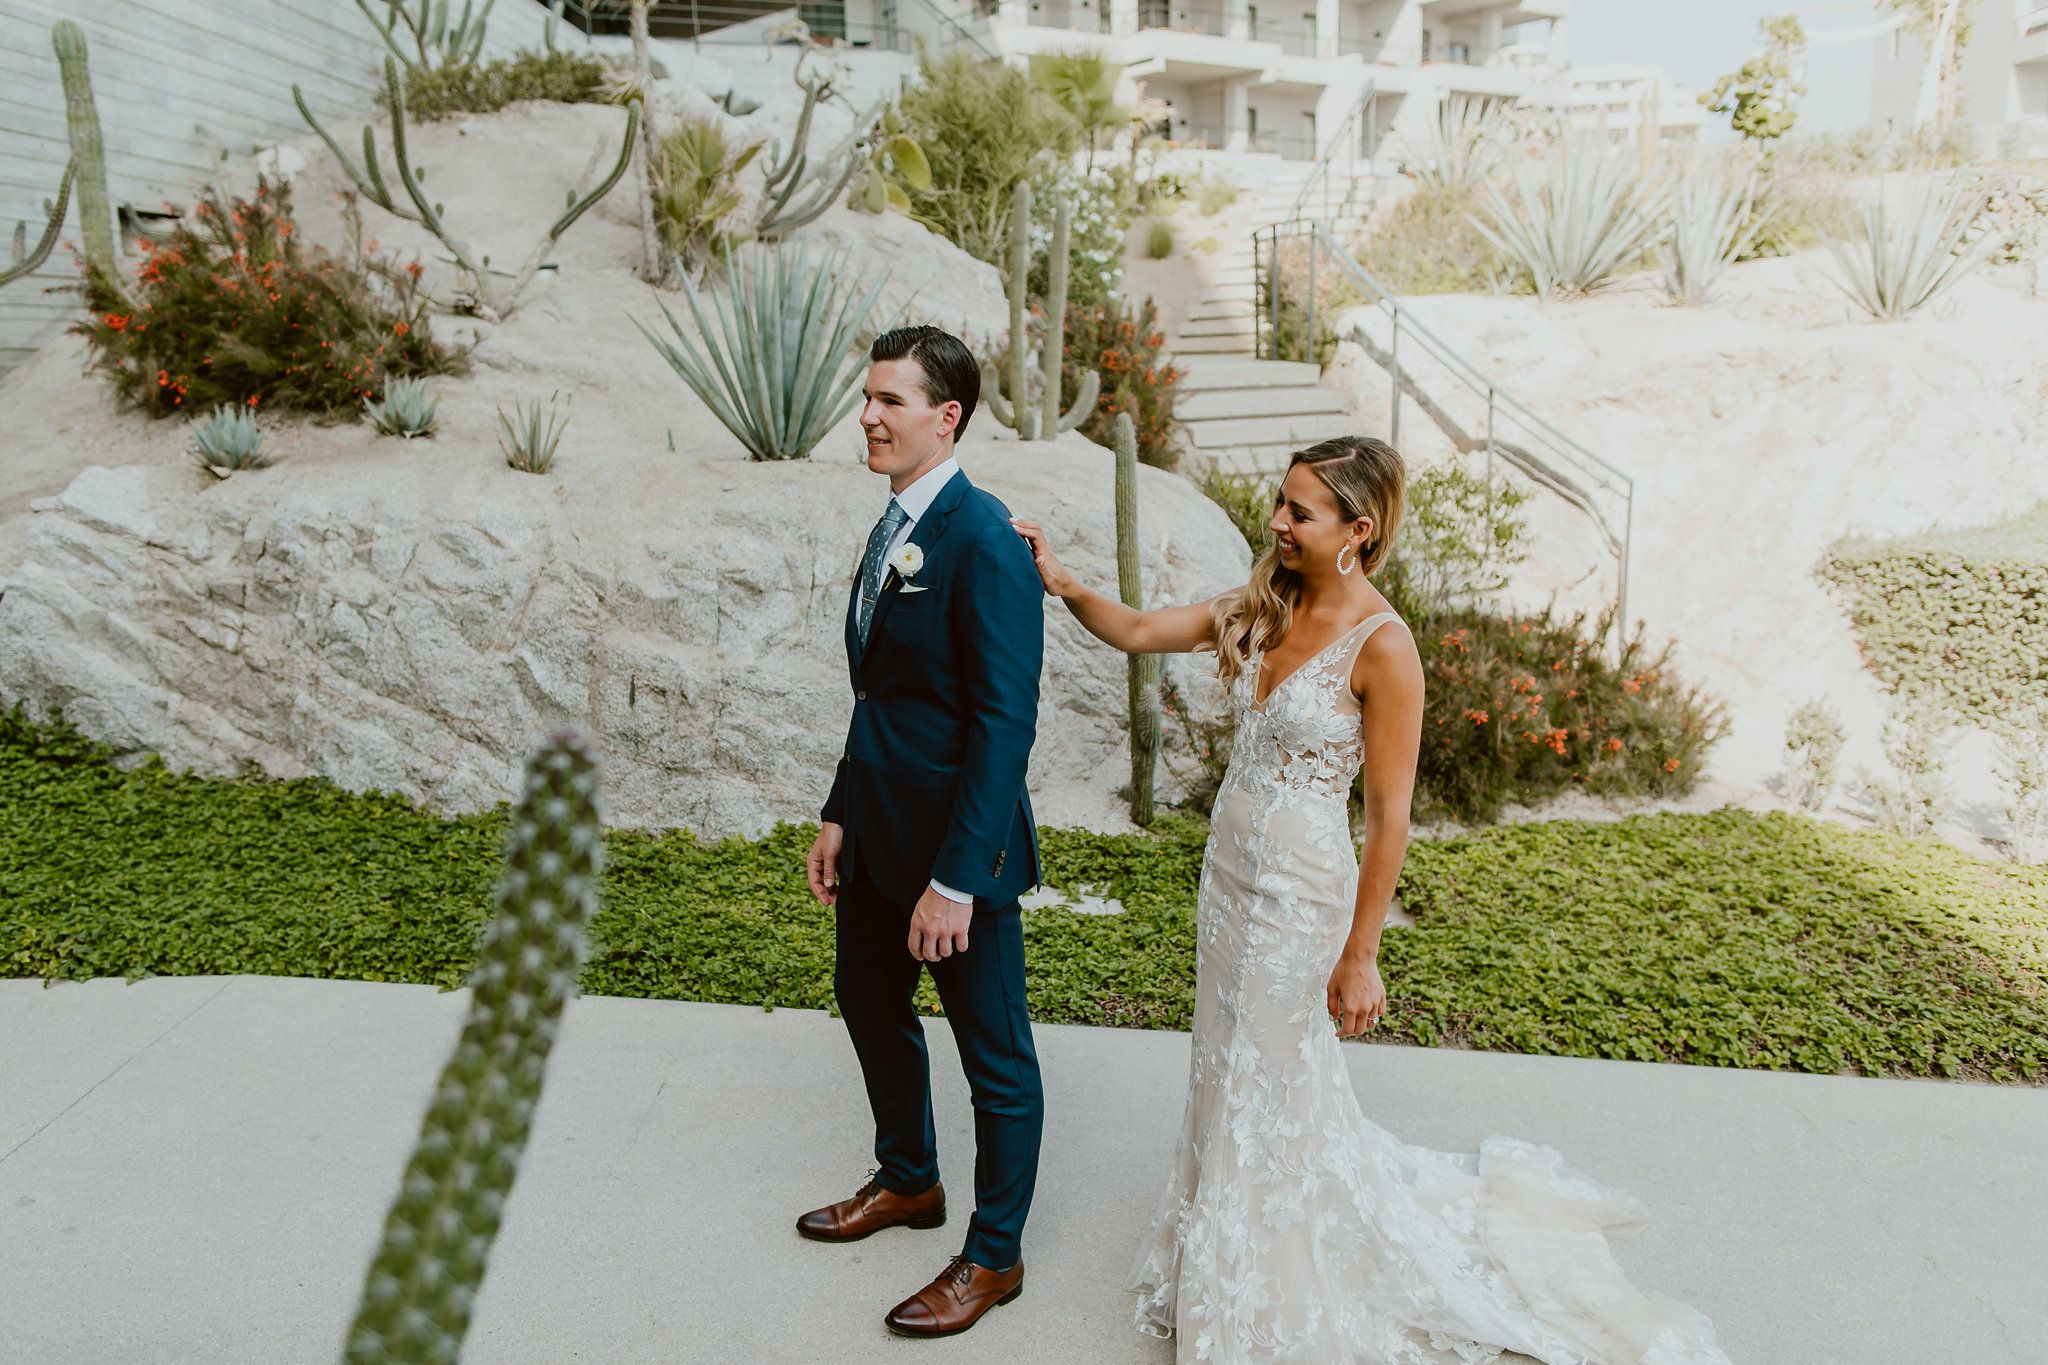 This photo was taken right before the Wedding Ceremony as the Bride and Groom did their first Look. This photo was taken by the Pool at the Cape by Thompson Hotels, planned and designed by Cabo Wedding Services